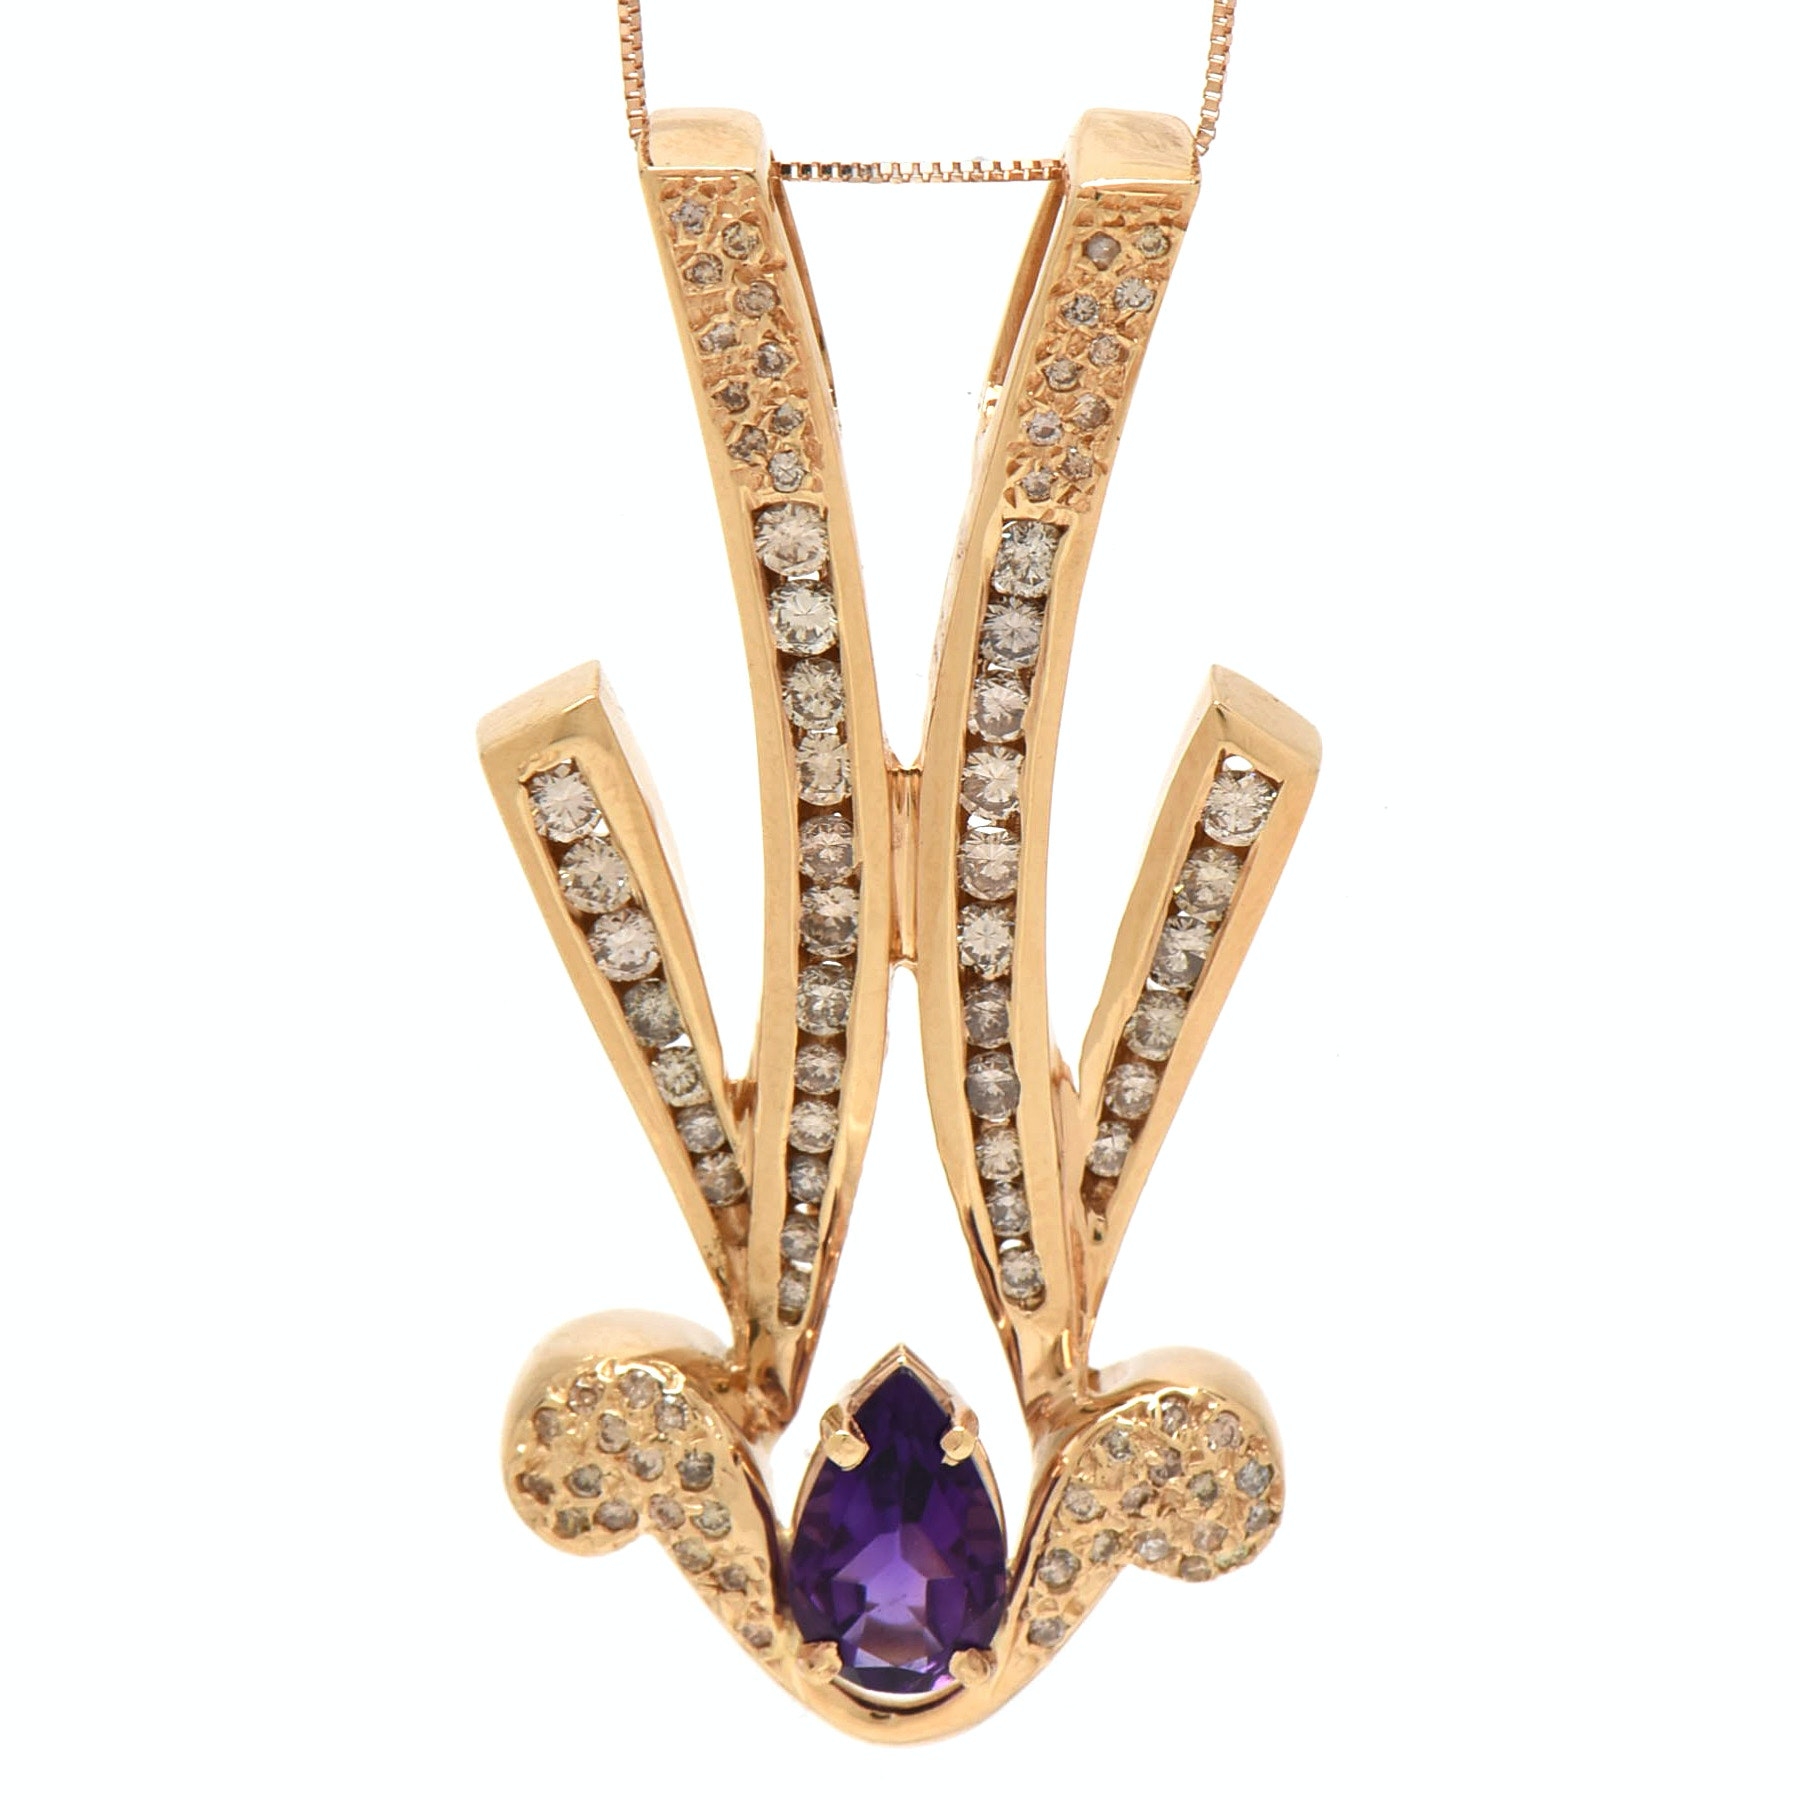 10K and 14K Yellow Gold Amethyst and 1.16 CTW Diamond Statement Pendant Necklace